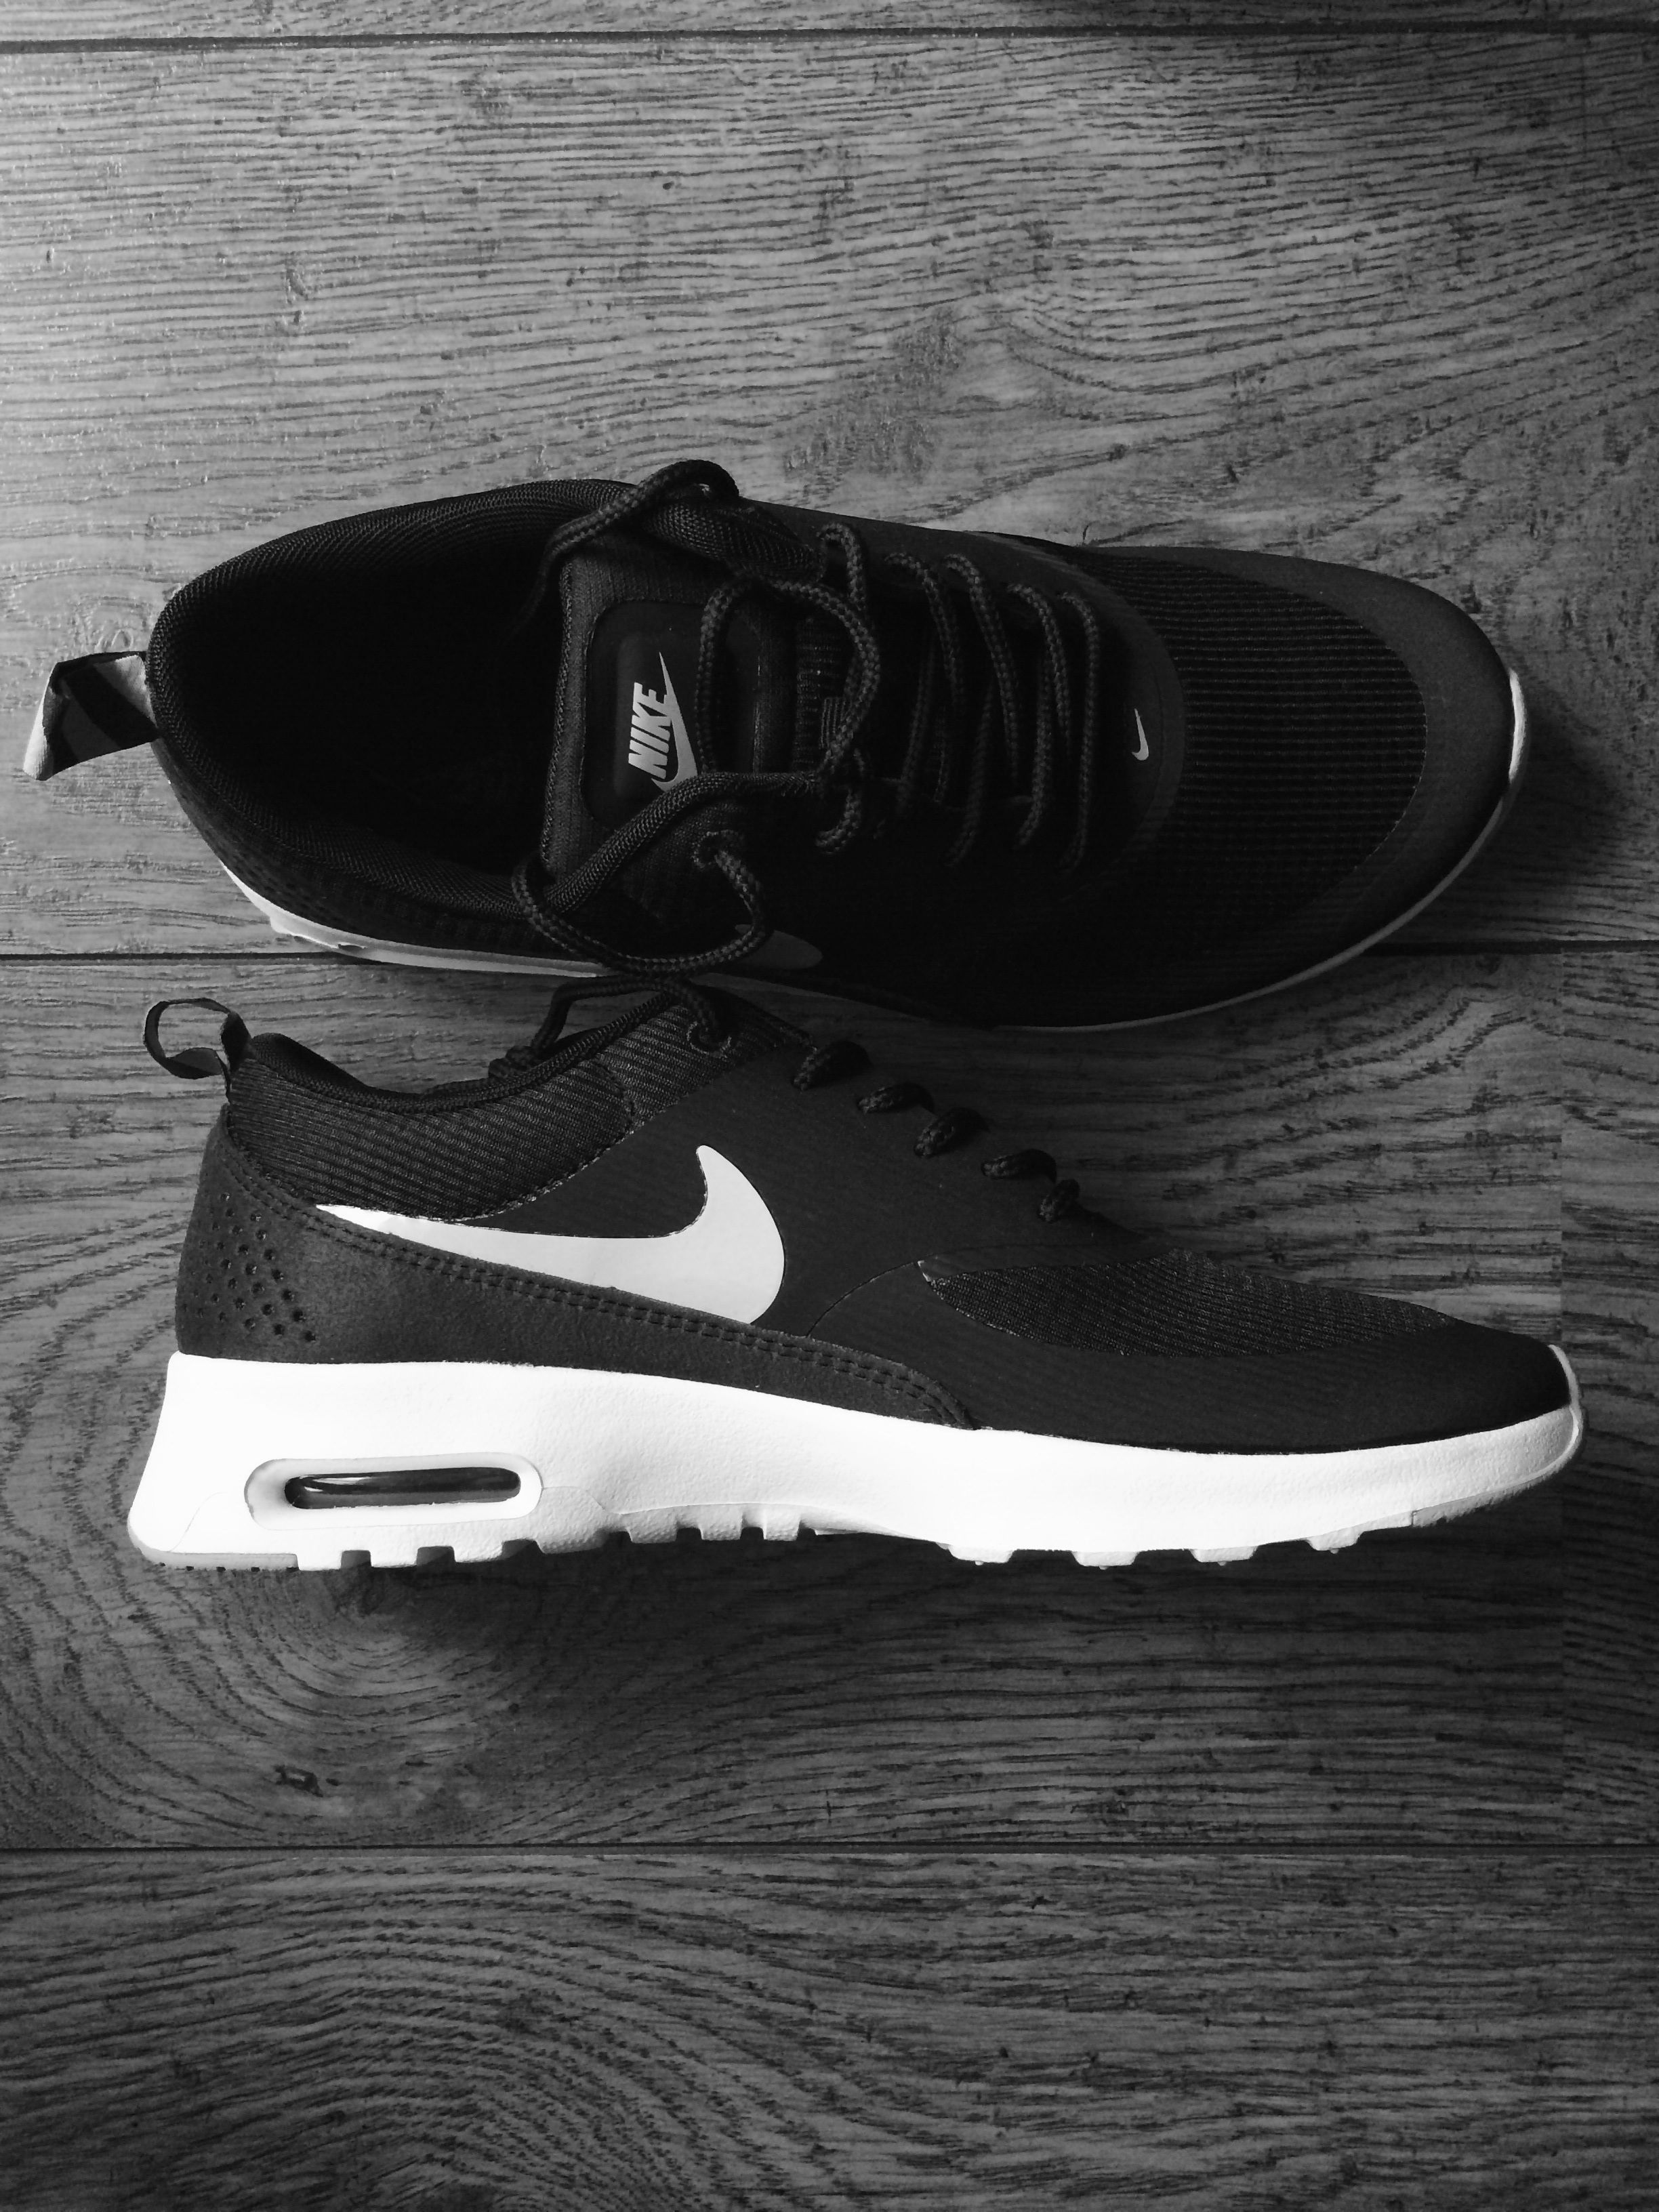 cffeaa0a1b Nike Airmax Thea : thank god my mum bought them for me she is a legend !!!!  these shoes are heapssss popular at the moment and every girl wants them.